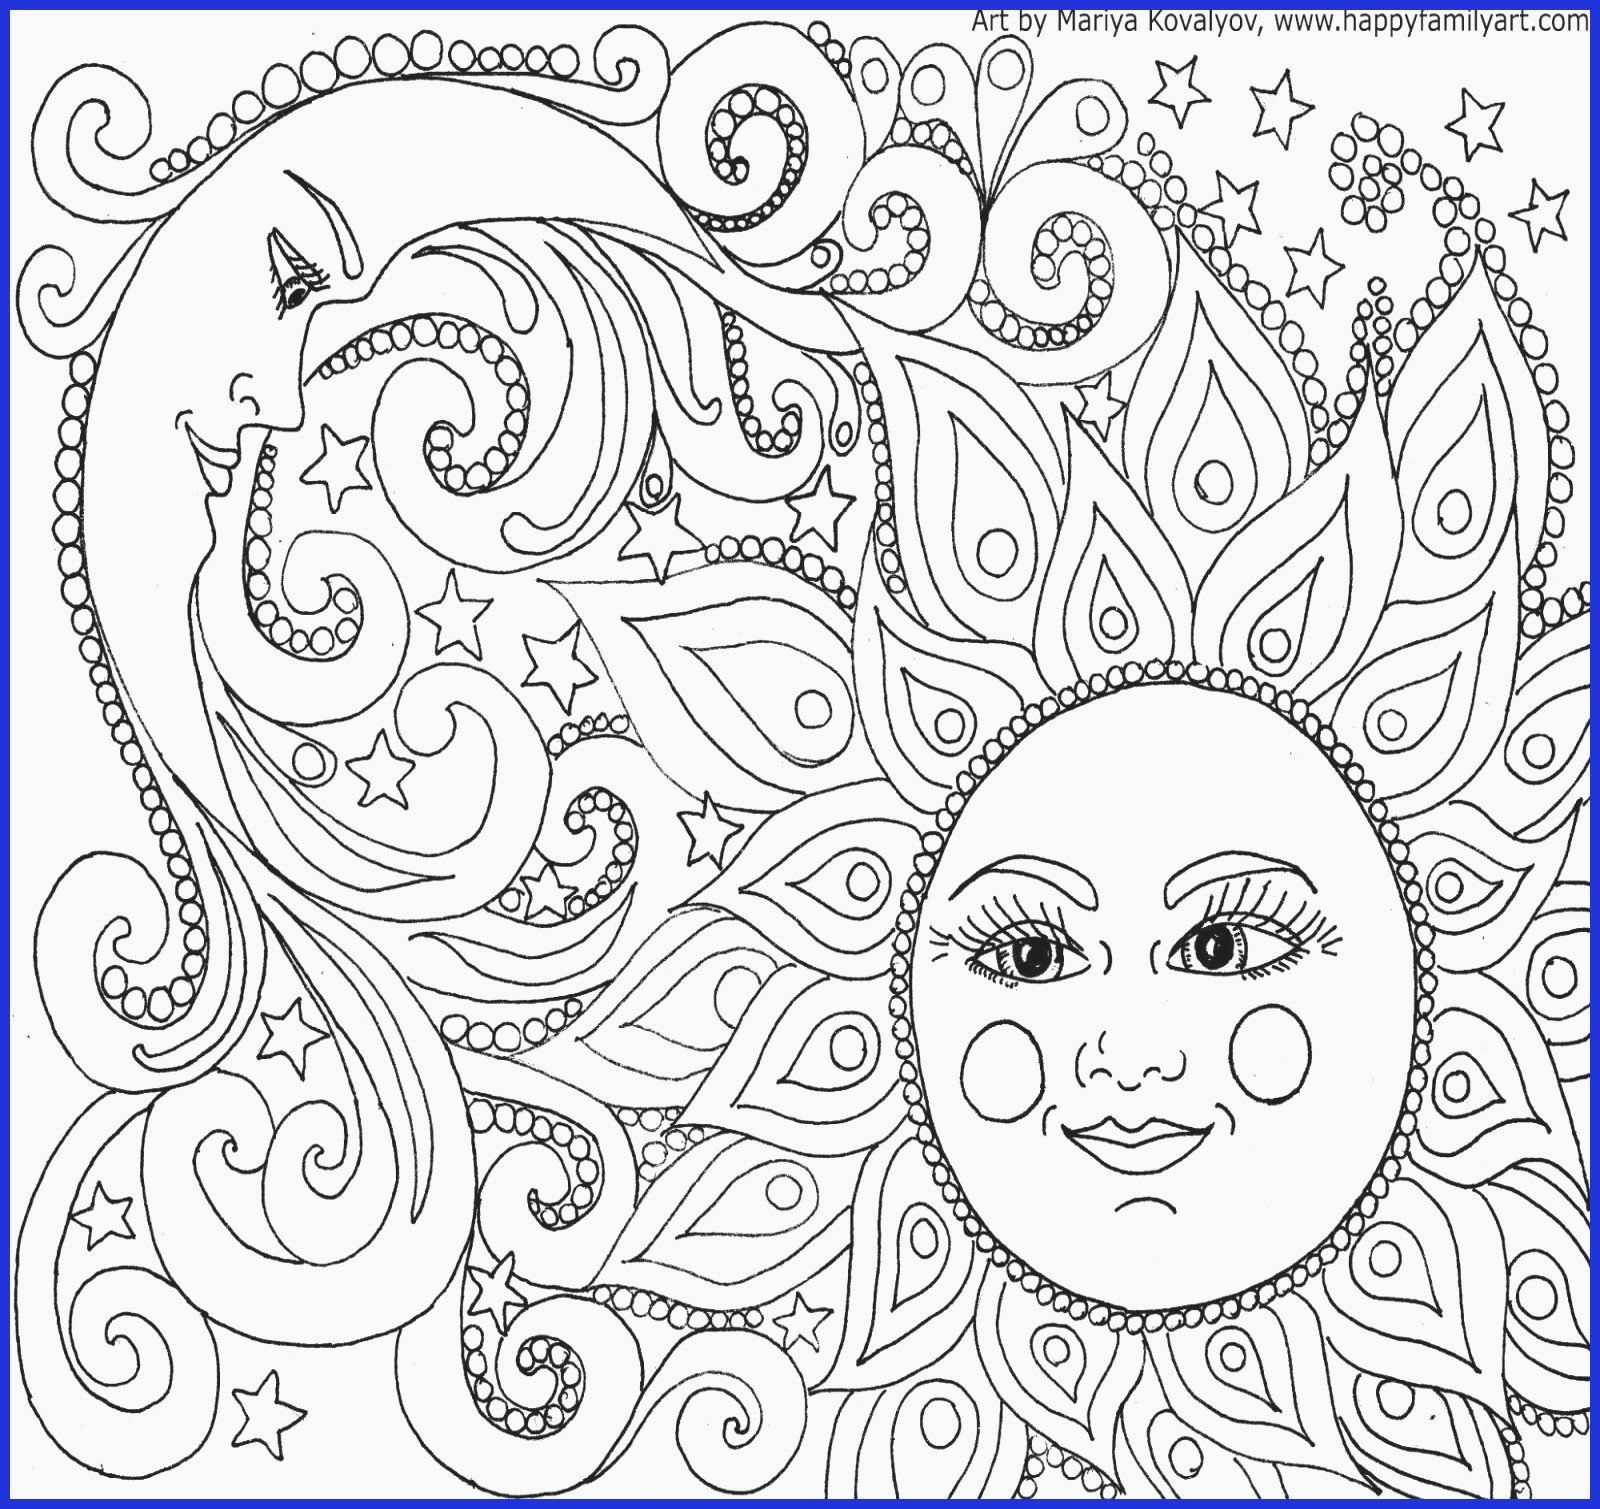 How To Design Coloring Books Best Of Marvelous De Stress Coloring Pages For Kids Printable Halaman Mewarnai Bunga Buku Mewarnai Halaman Mewarnai